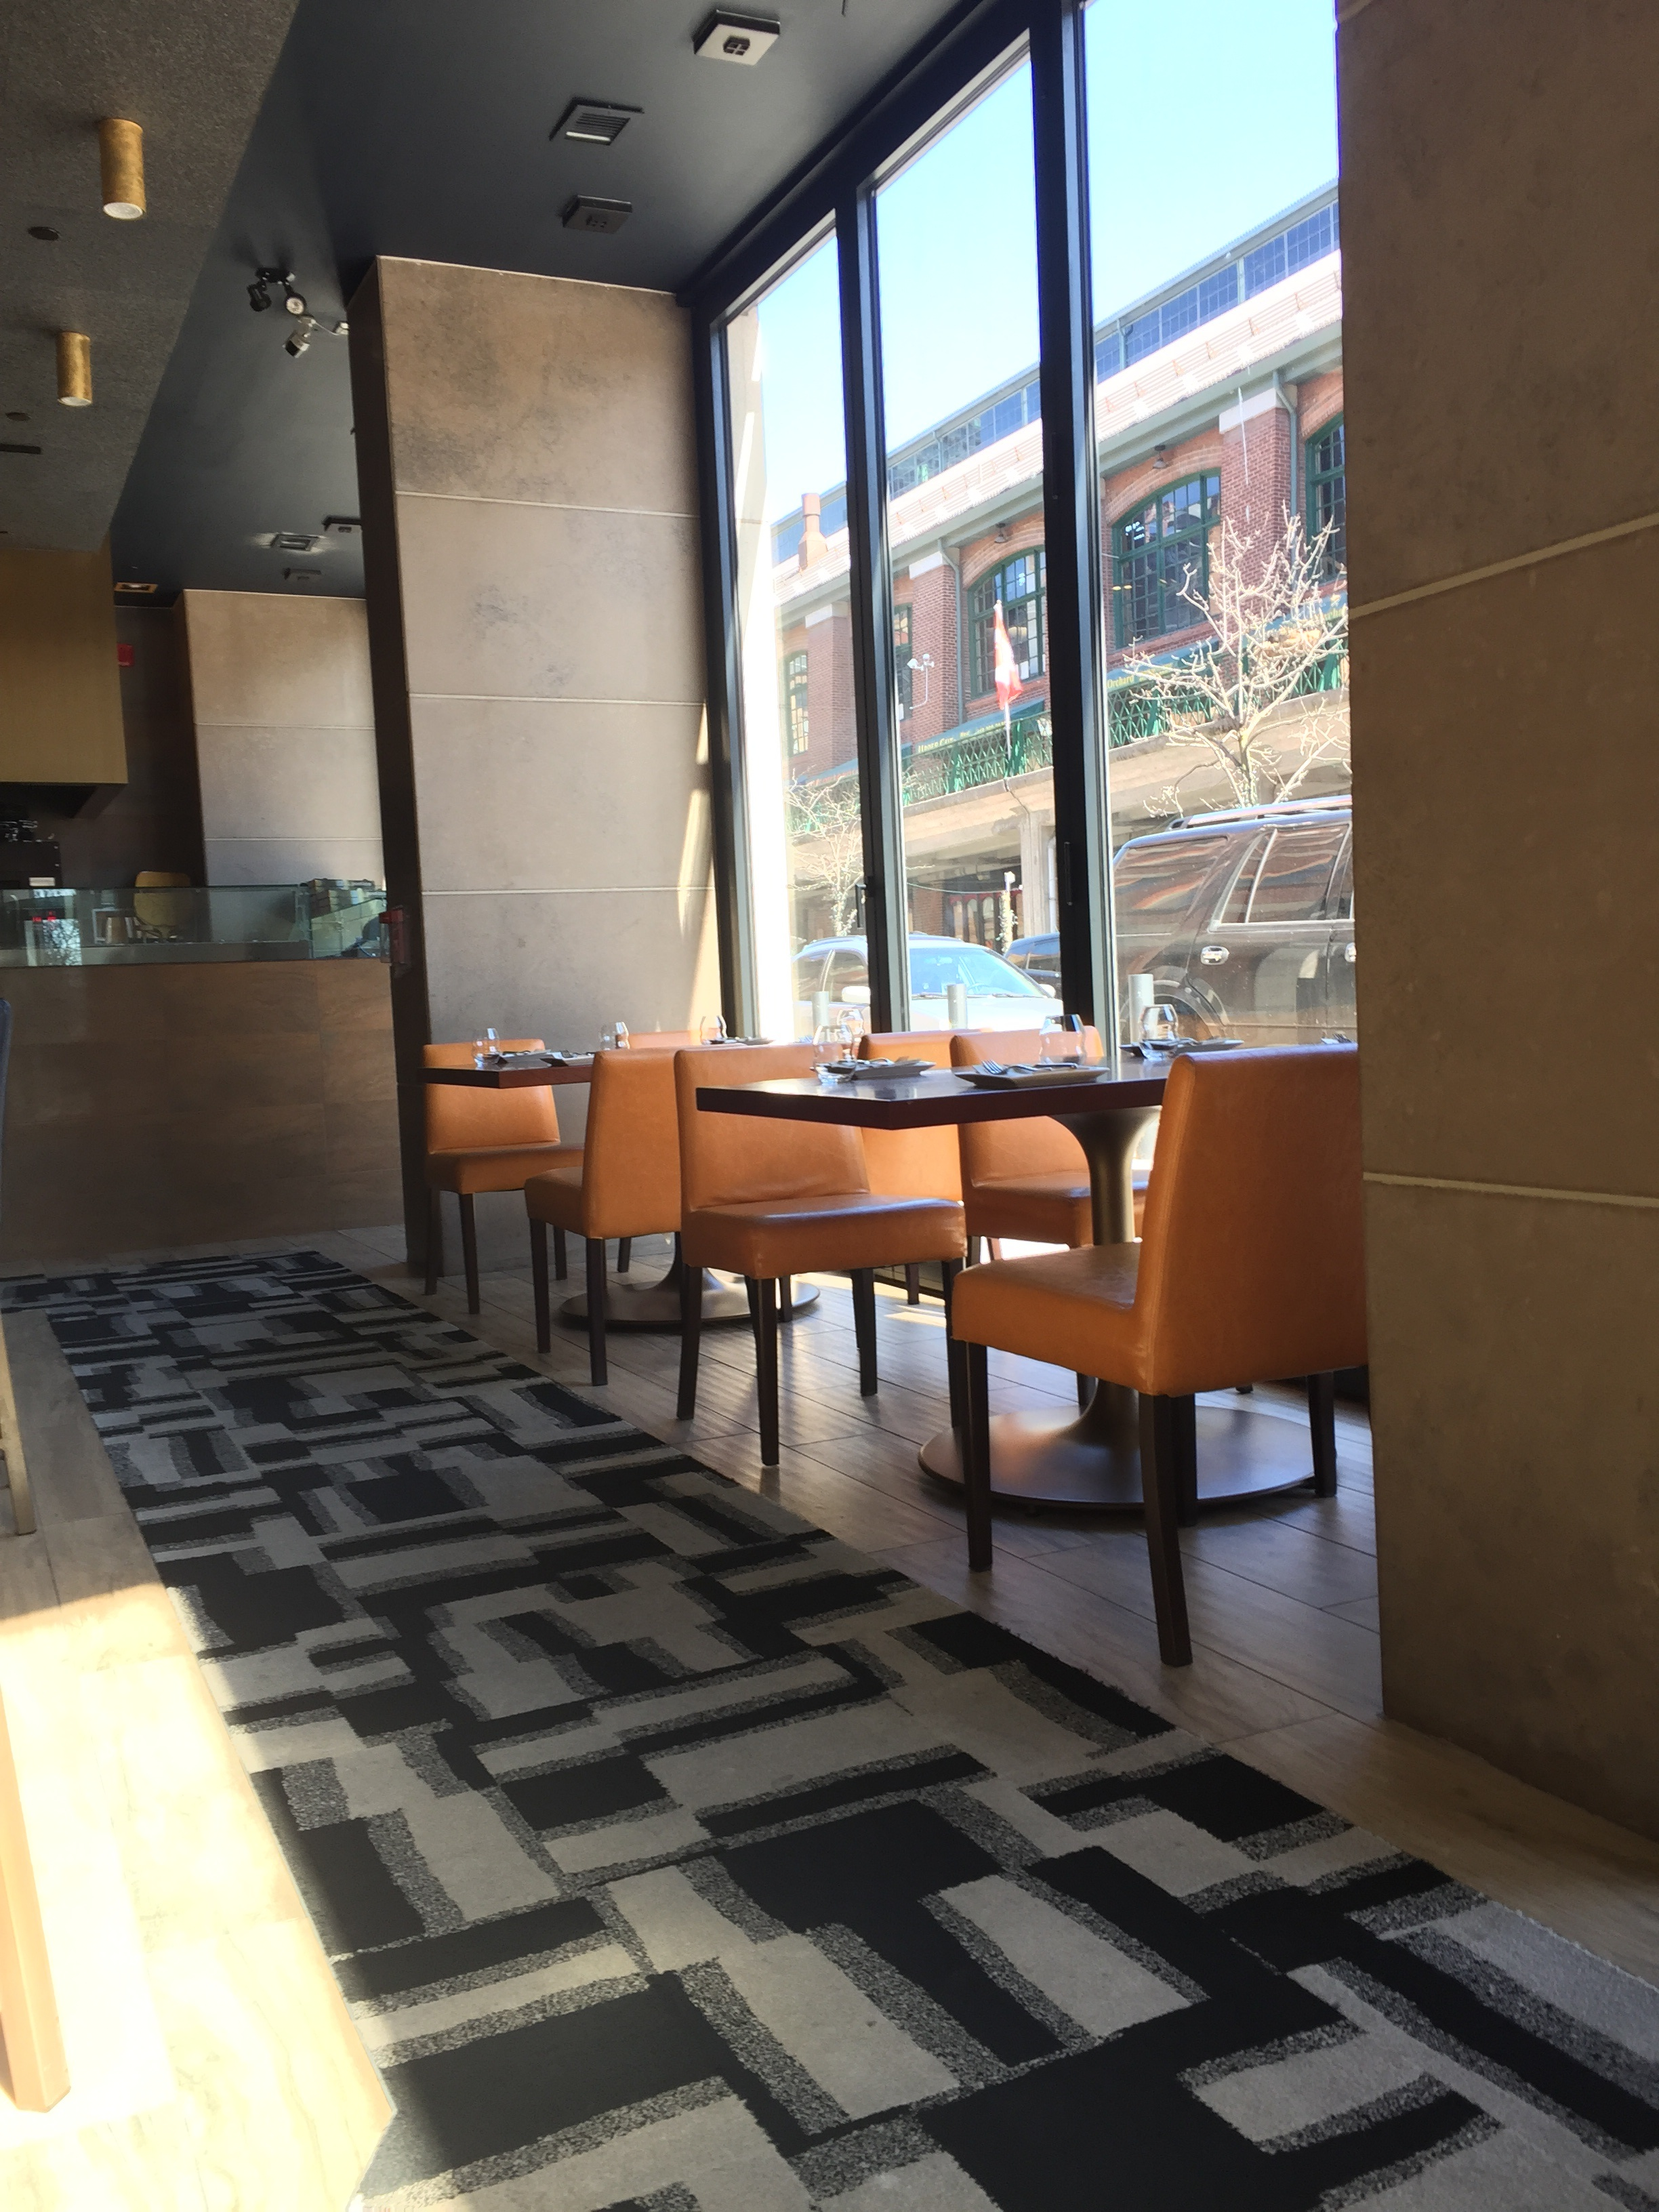 Picture of accessible seating area of restaurant.